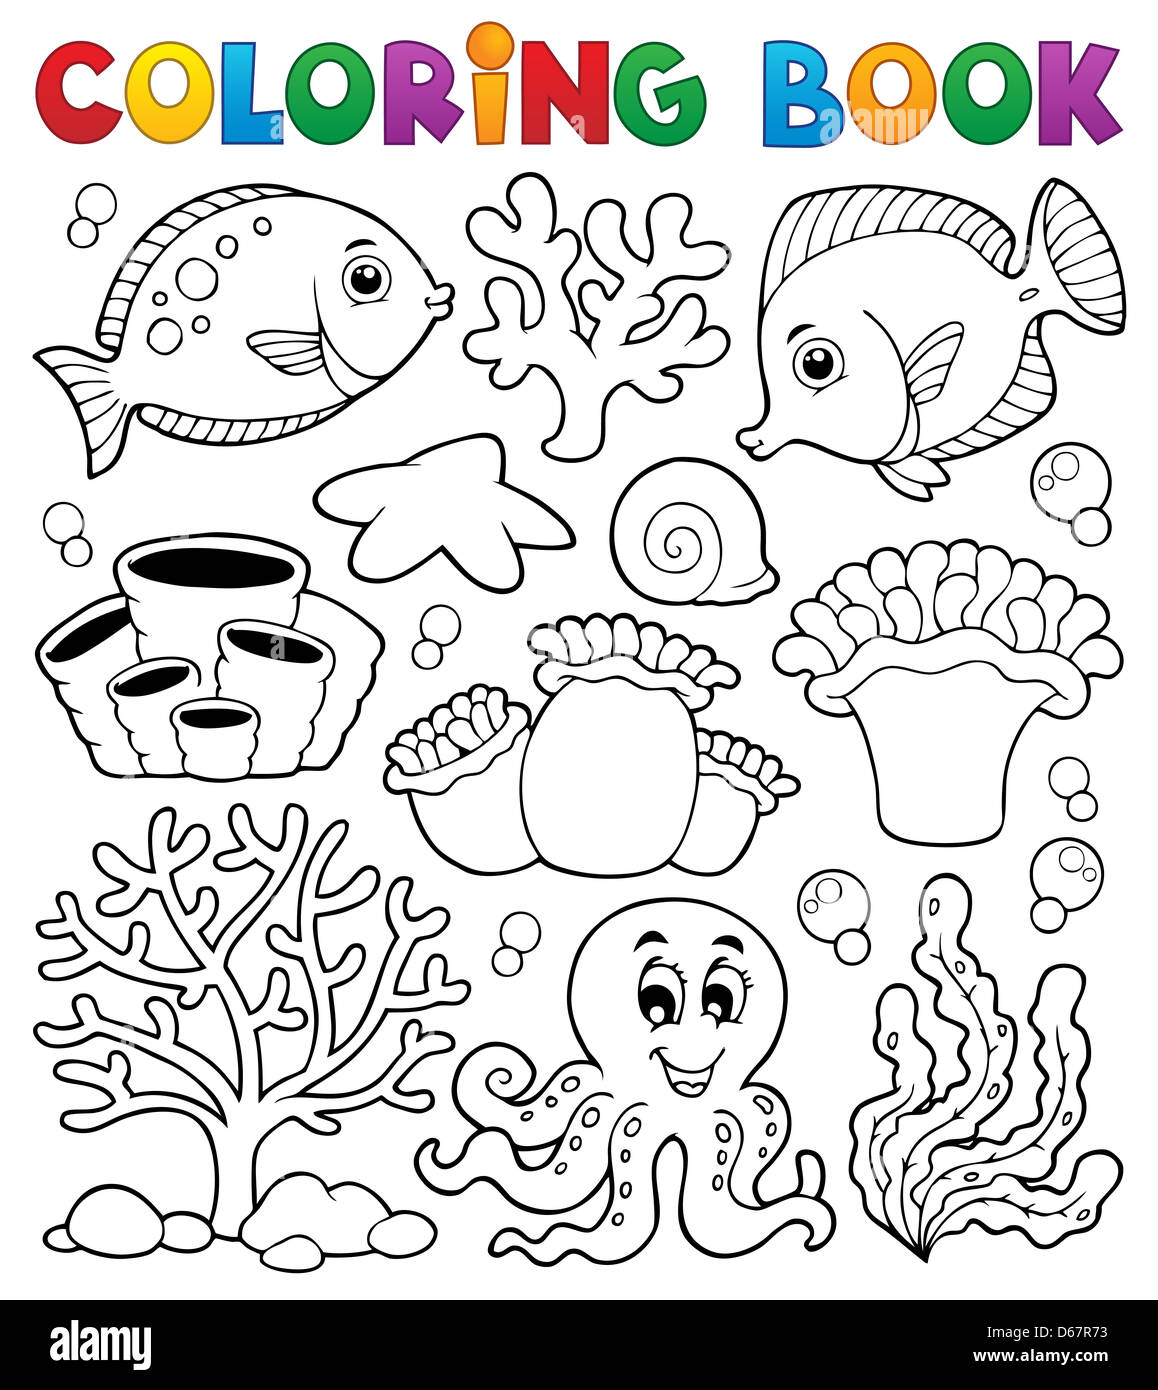 Coloring book coral reef theme 2 - picture illustration. - Stock Image